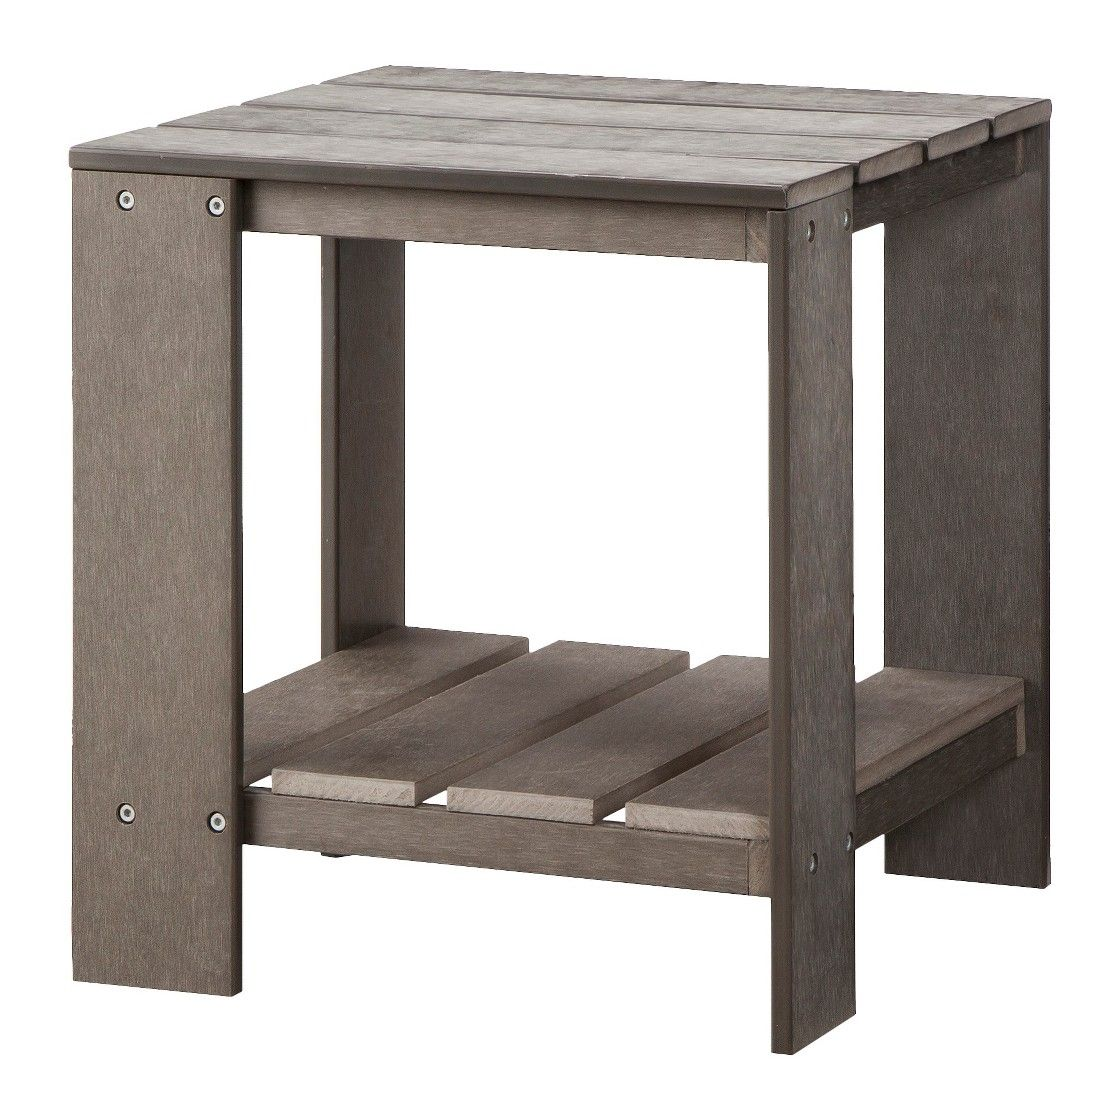 Threshold Bryant Faux Wood Patio Adirondack Accent Table ...